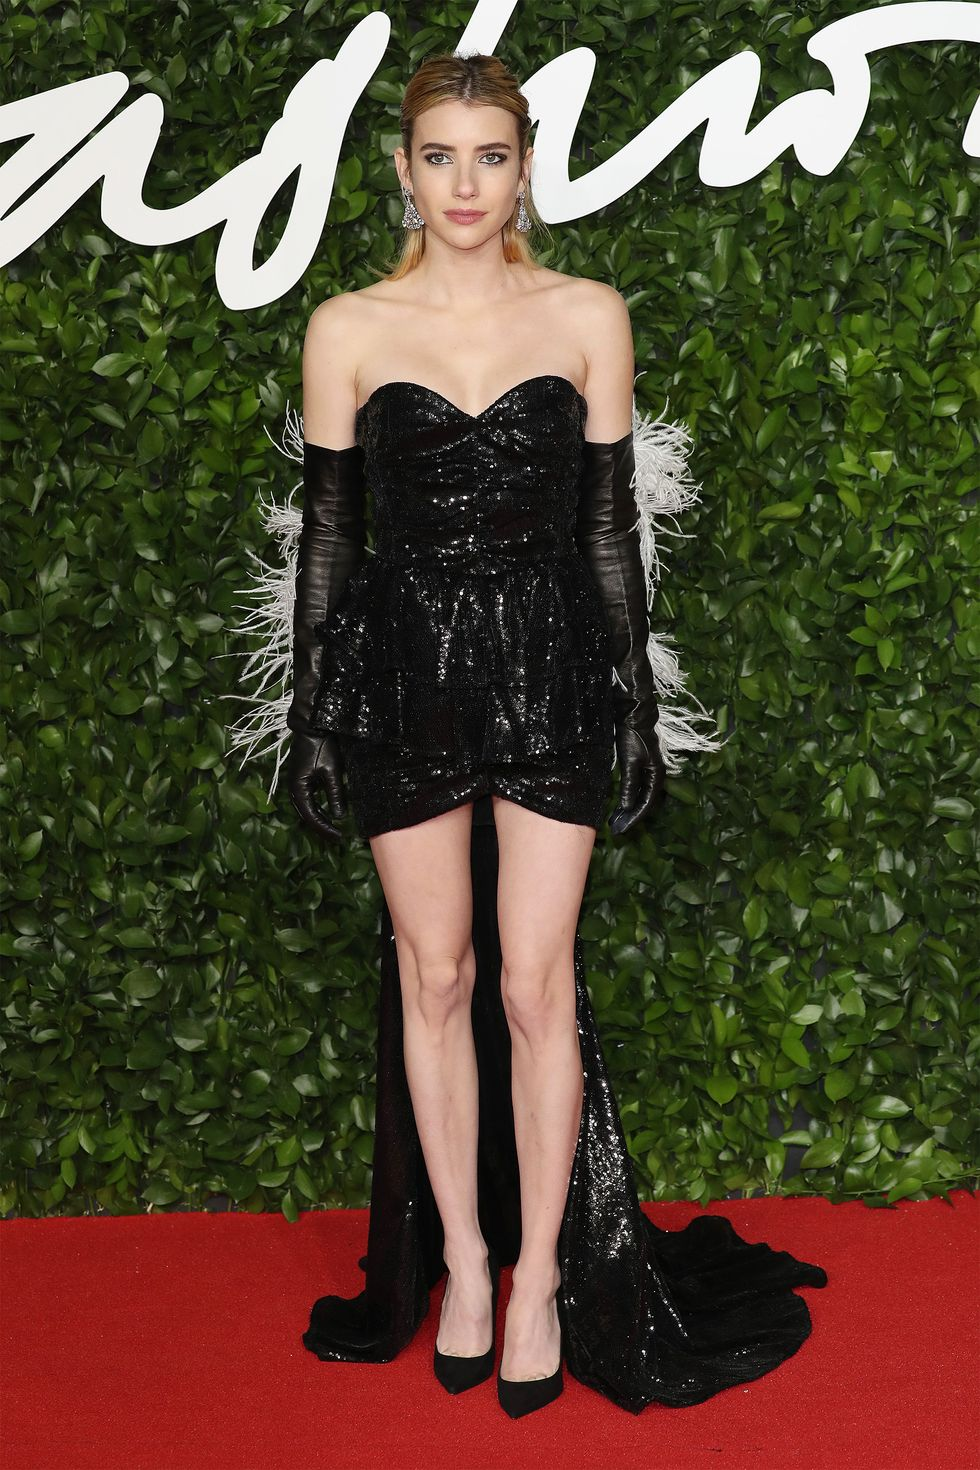 hbz-fashion-awards-2019-emma-roberts-1575315164